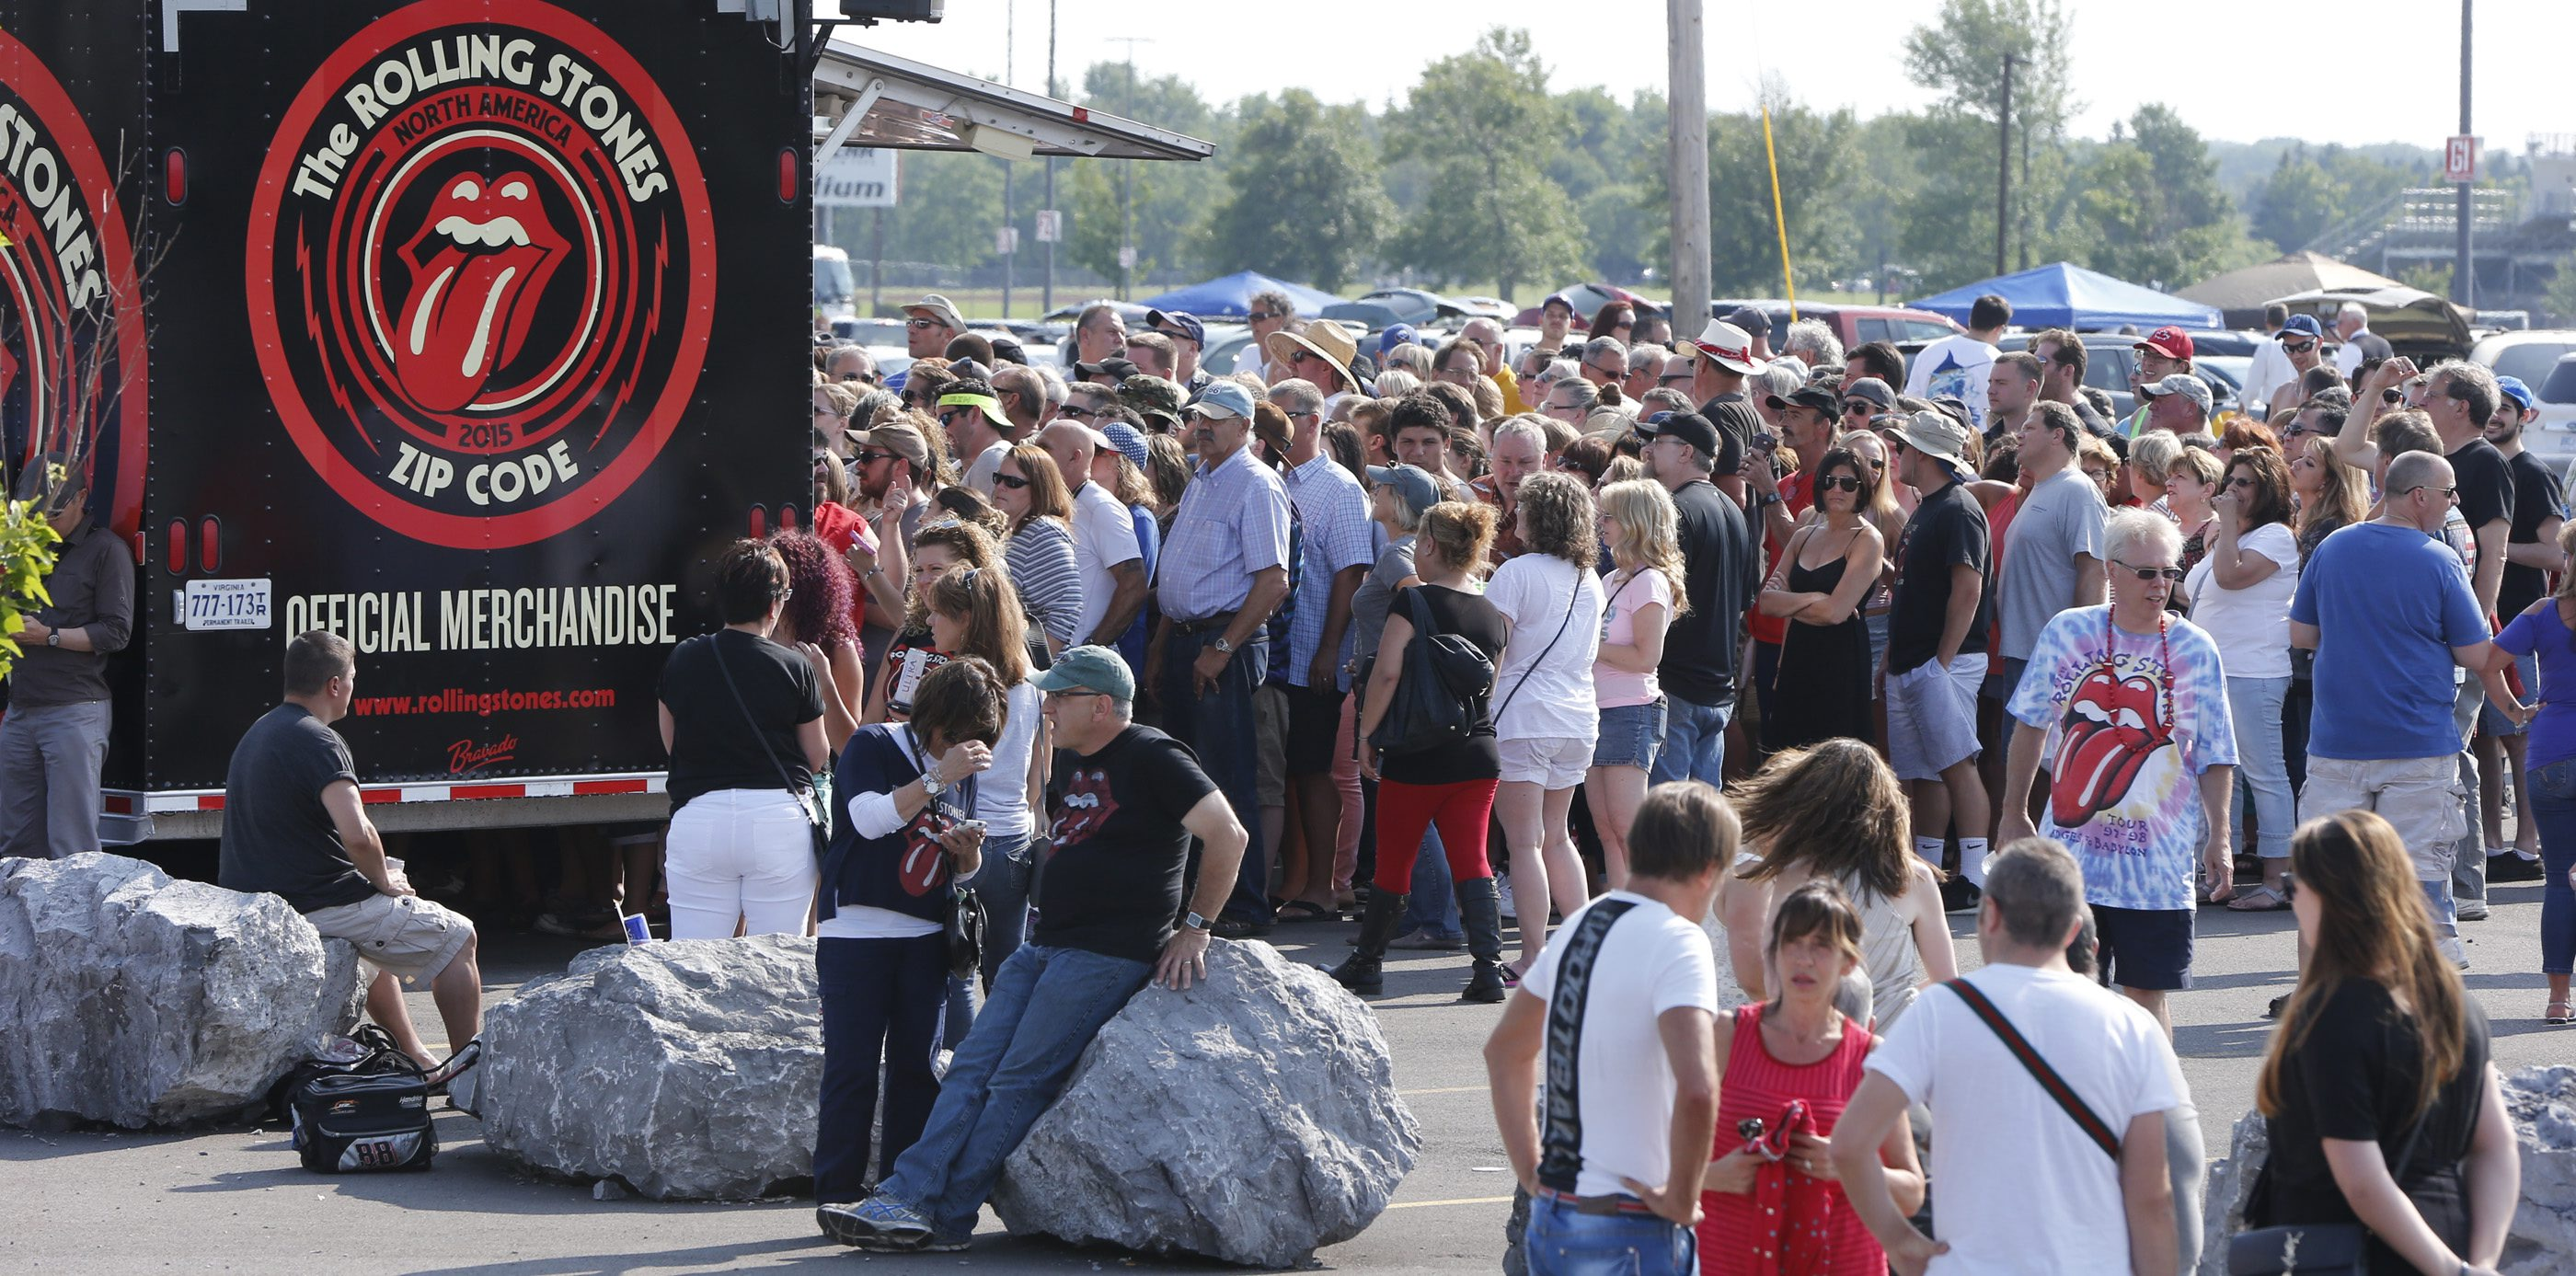 Fans line up for Rolling Stones merchandise at Ralph Wilson Stadium on  on Saturday, July 11, 2015.  (Harry Scull Jr / Buffalo News)